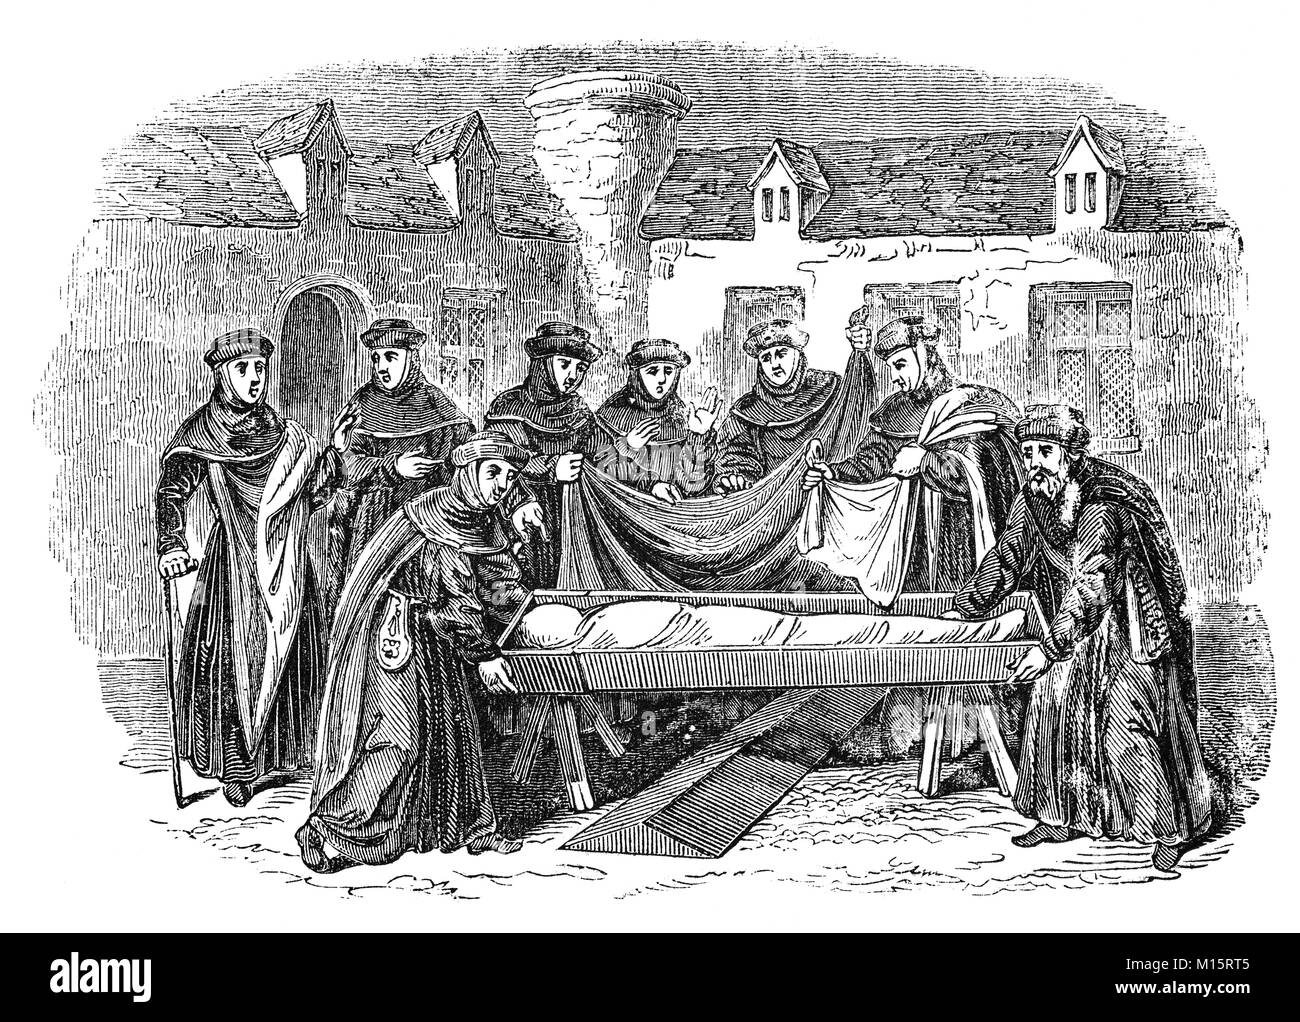 The burial ceremony of a deceased monk in a 14th Century English convent. - Stock Image